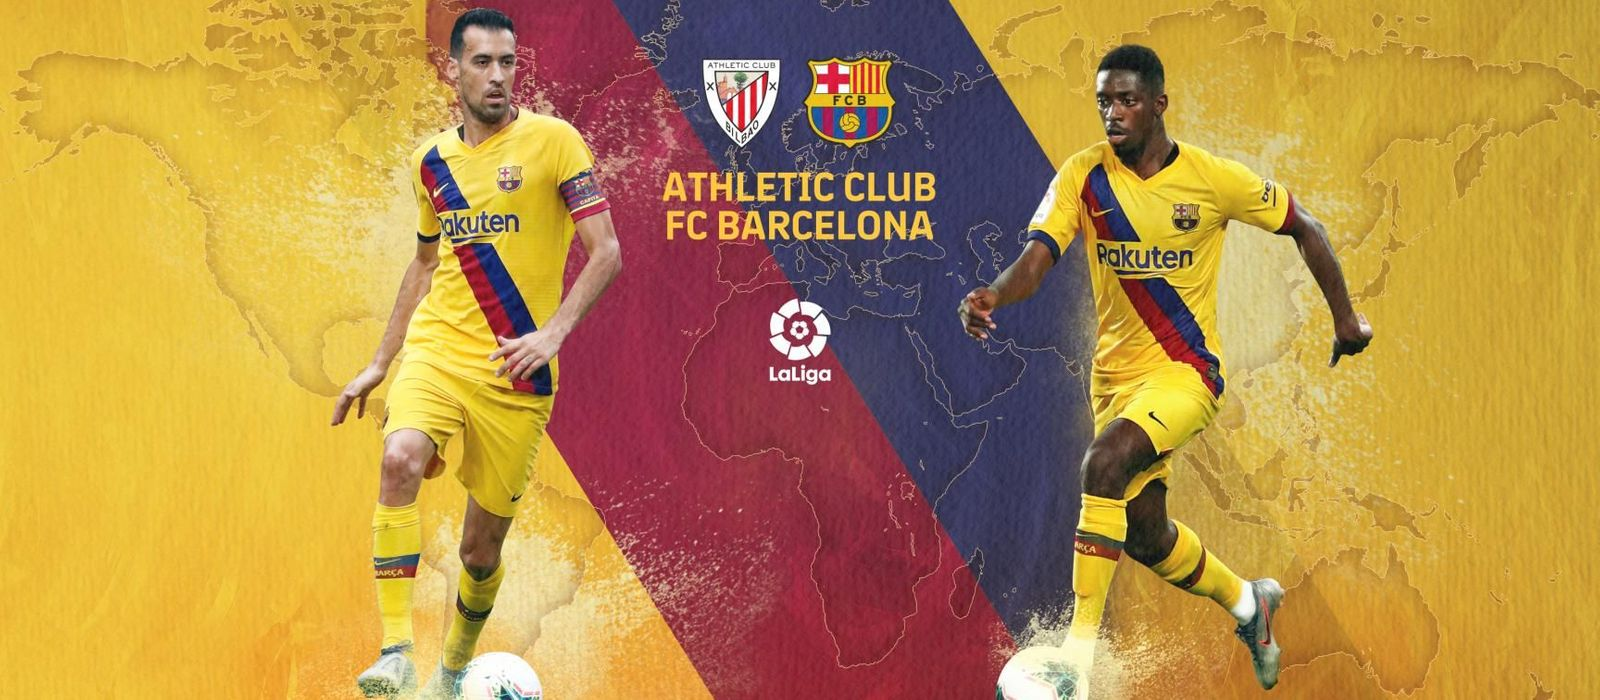 When and where to see Athletic Club v Barça